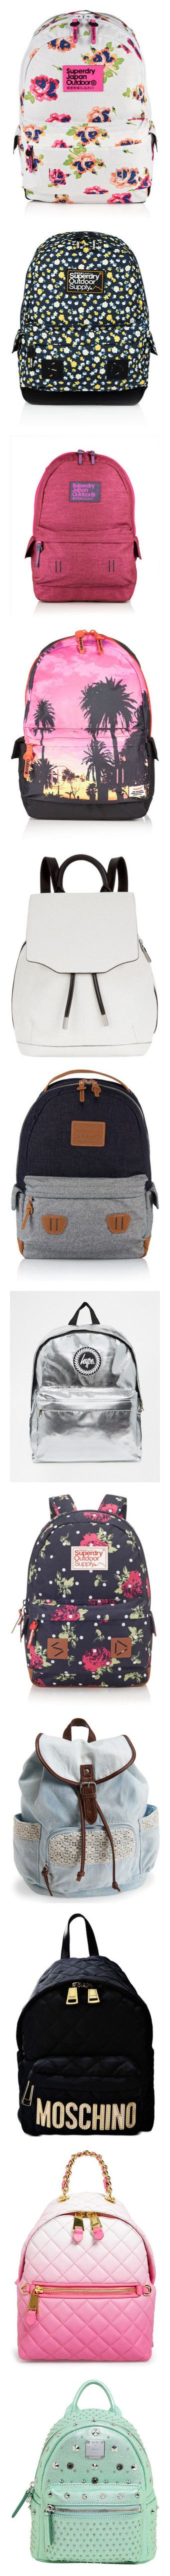 """""""Cute school bag"""" by mimmykitty327 ❤ liked on Polyvore featuring bags, backpacks, white, superdry, knapsack bags, superdry bag, superdry backpack, white bags, navy and floral bag"""